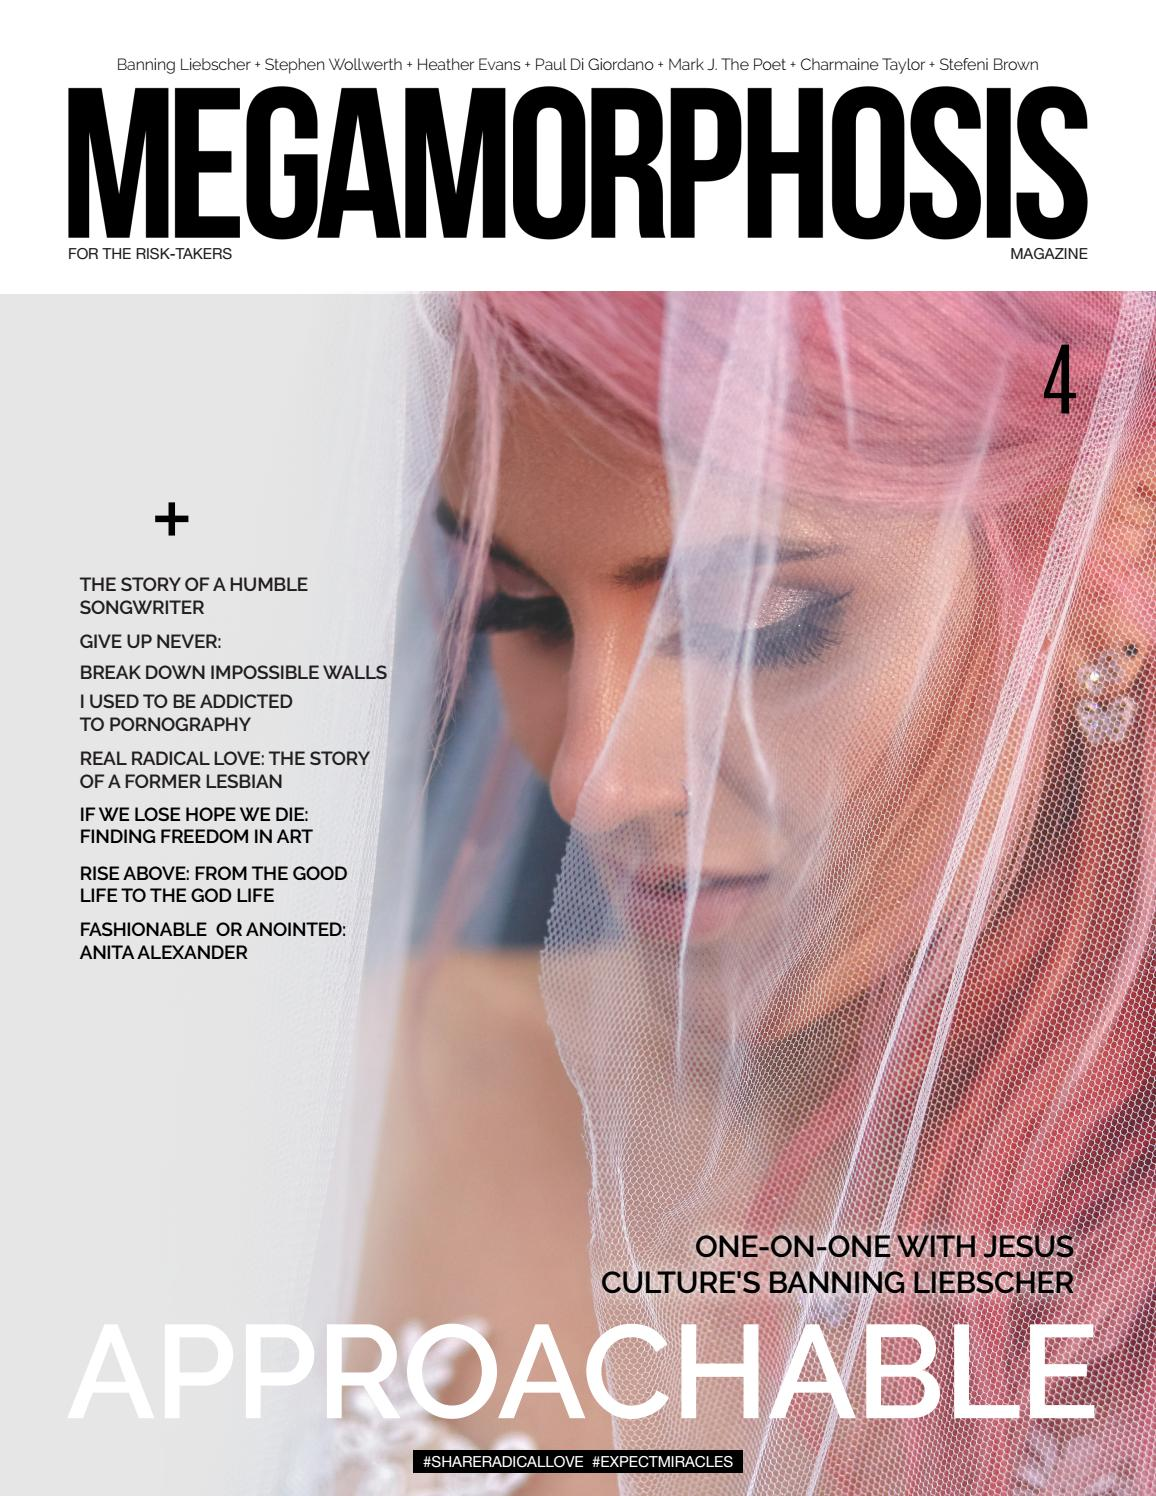 MEGAMORPHOSIS - Issue 4 - July 2018 by Megamorphosis Magazine - issuu